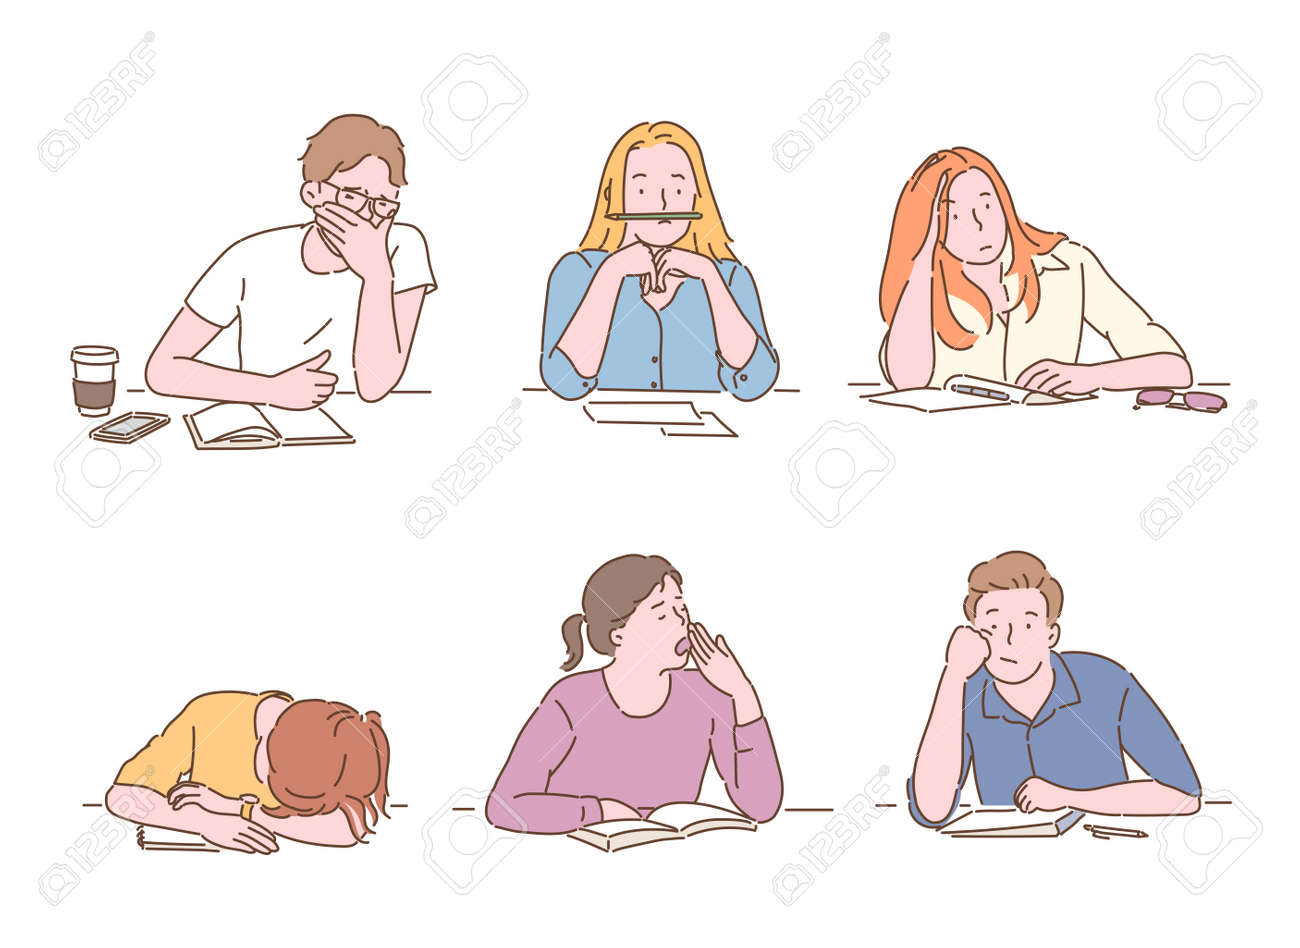 Students look bored while studying. hand drawn style vector design illustrations. - 172368716